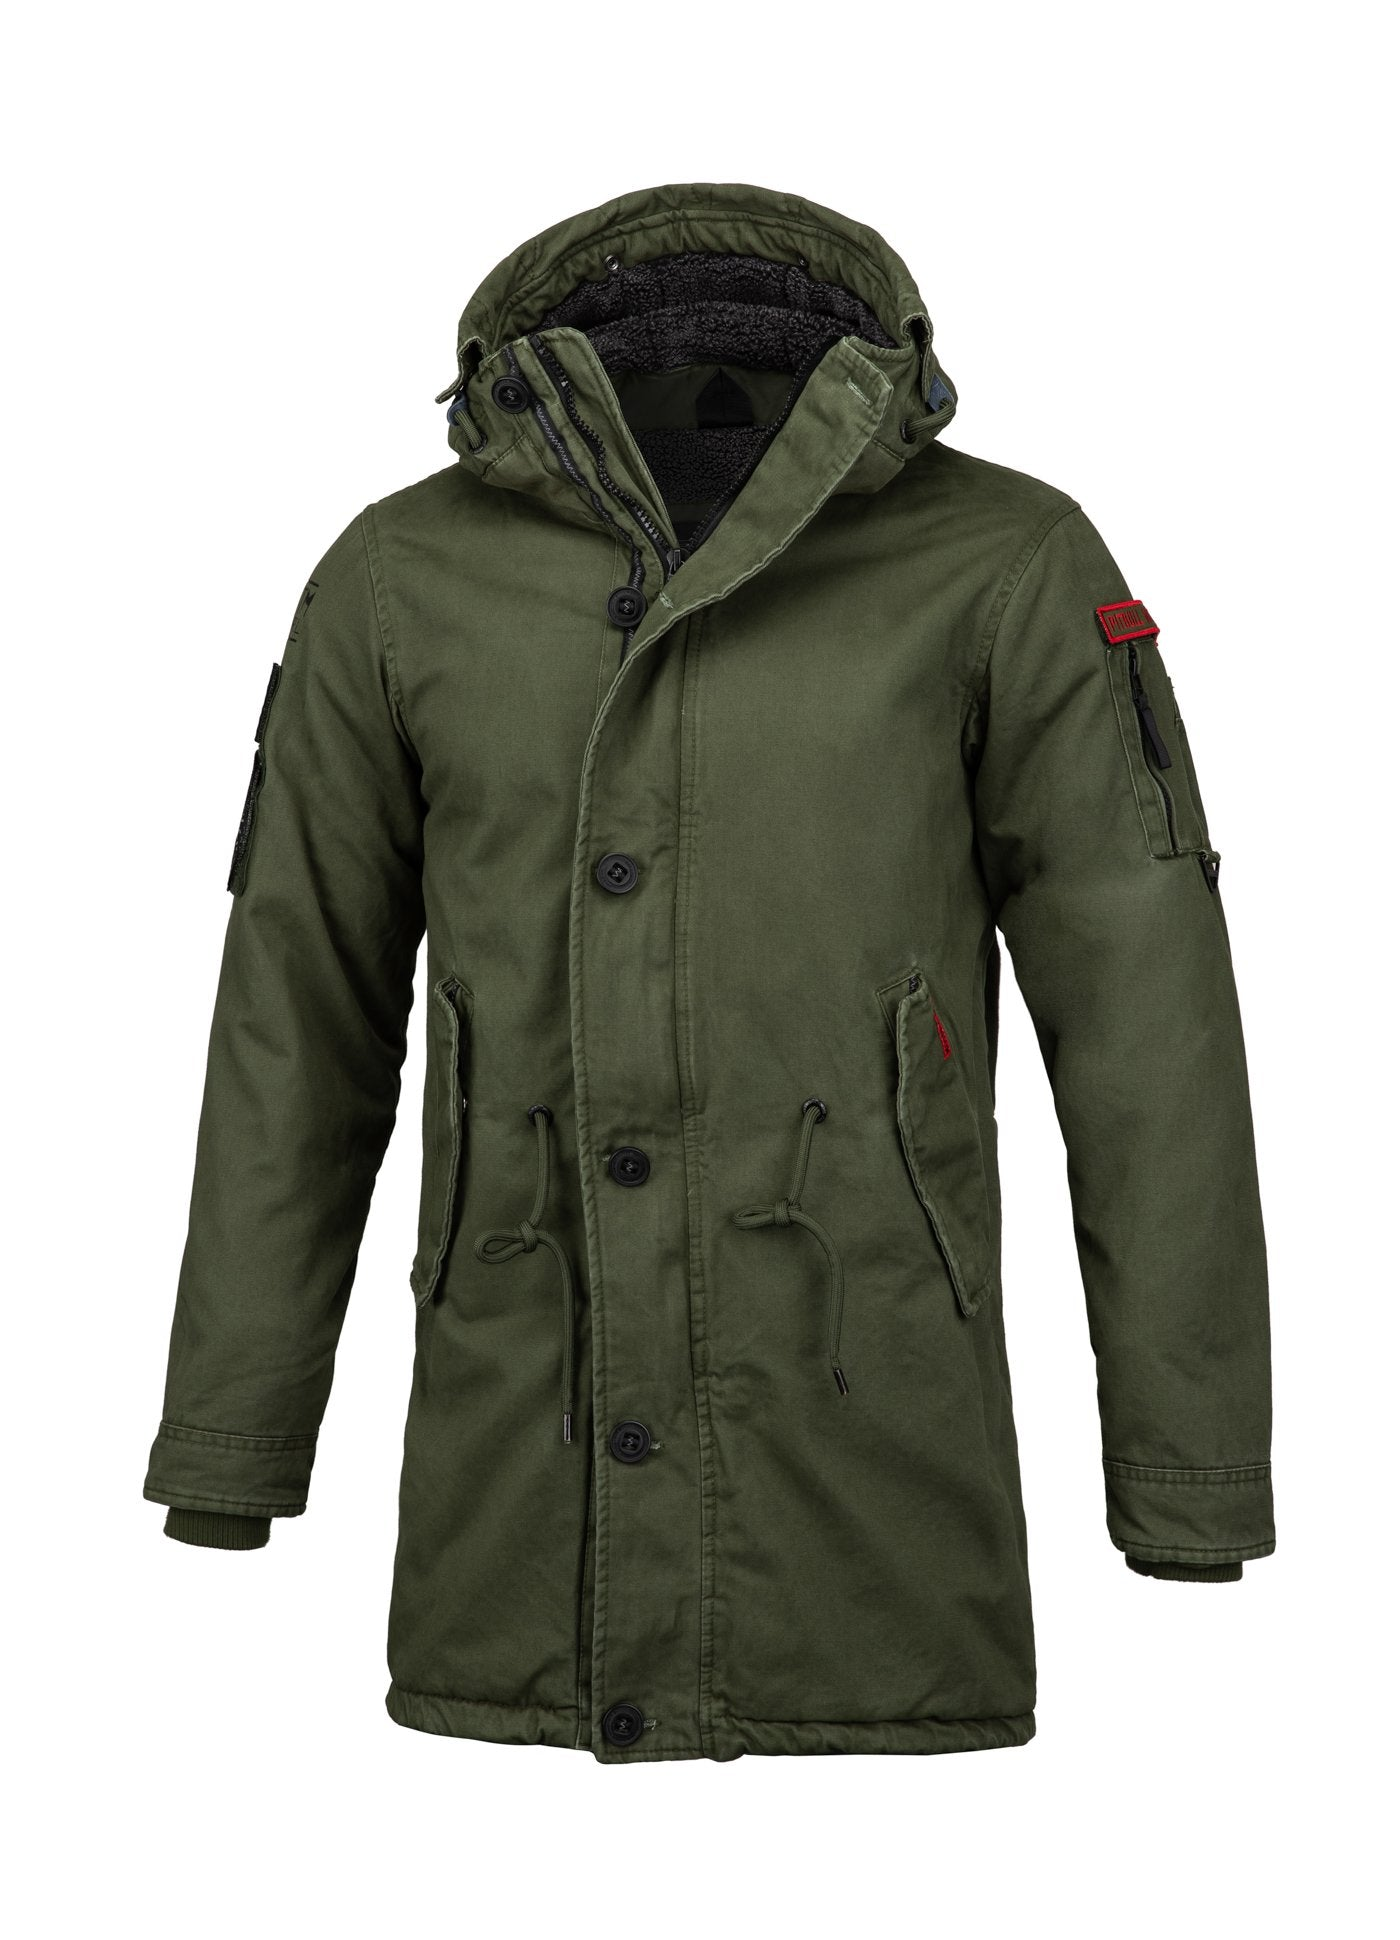 WINTER JACKET HEMLOCK III OLIVE - pitbullwestcoast